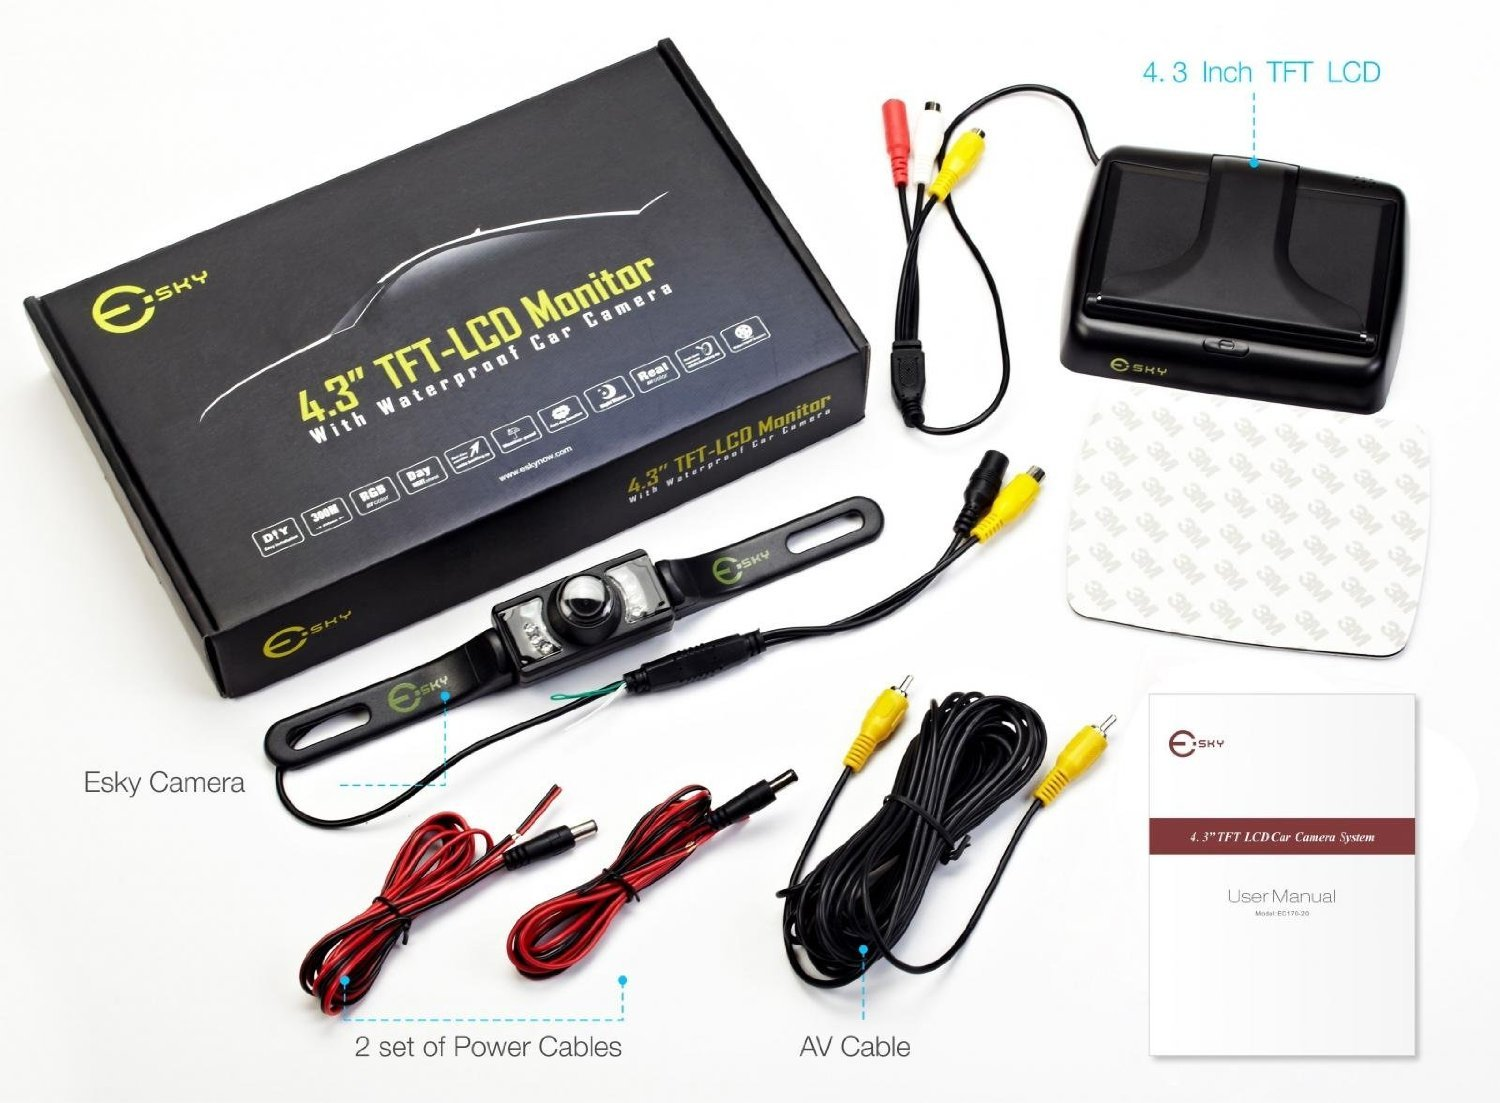 Esky Ec170 20 43 Inch Rear View Tft Lcd Monitor With Wiring 135 Degree Waterproof Car Camera Cell Phones Accessories